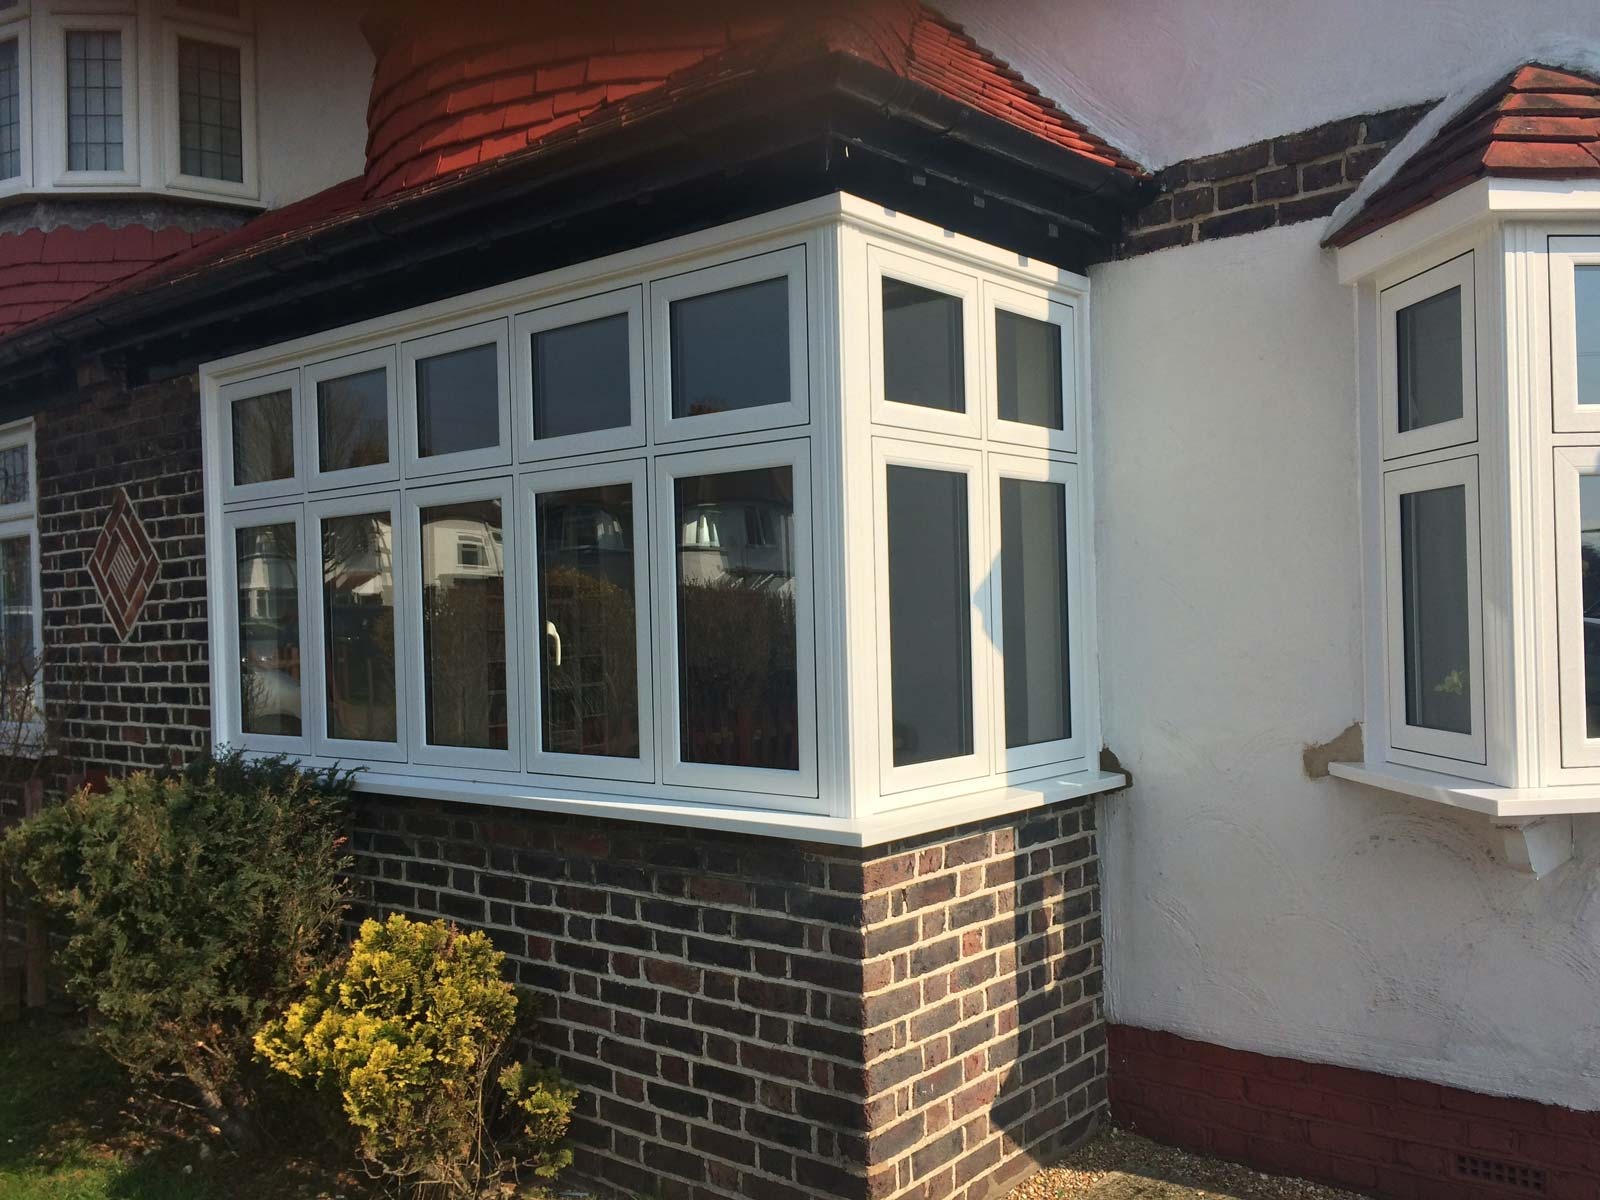 FlushSash PVCu windows in Whitegrain